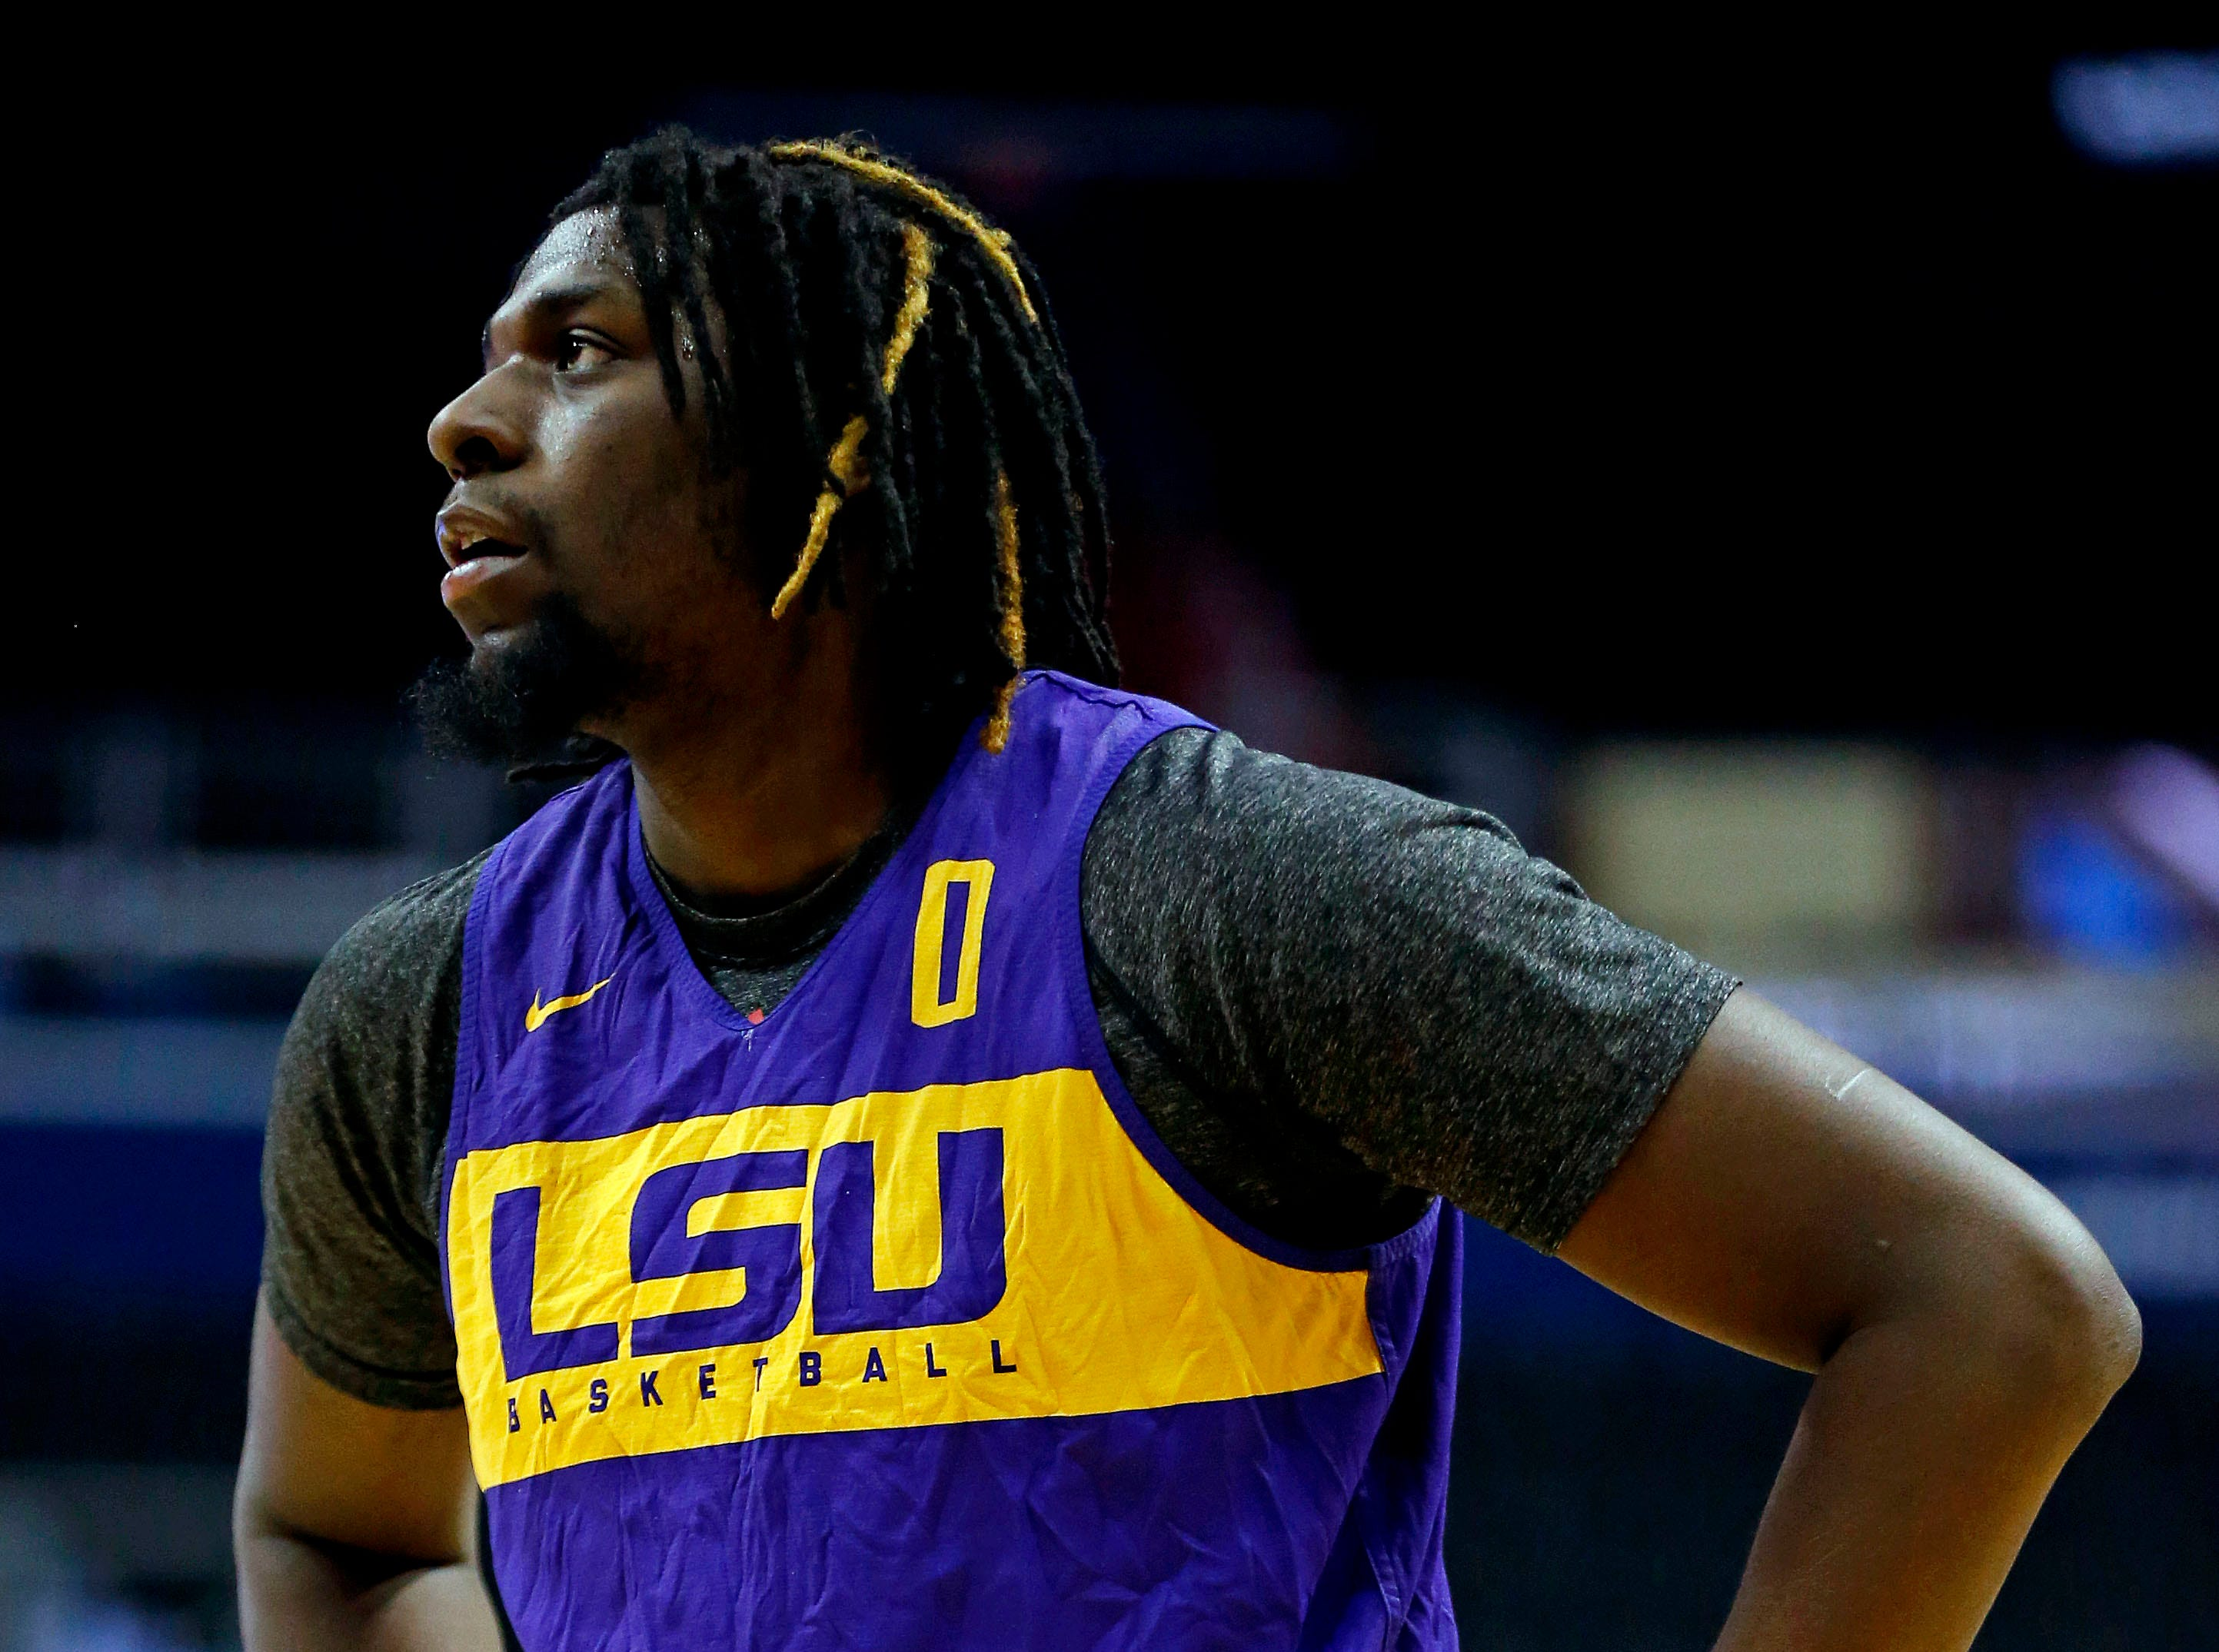 Mar 28, 2019; Washington, DC, USA; LSU Tigers forward Naz Reid (0) during practice for the east regional of the 2019 NCAA Tournament at Capital One Arena. Mandatory Credit: Amber Searls-USA TODAY Sports